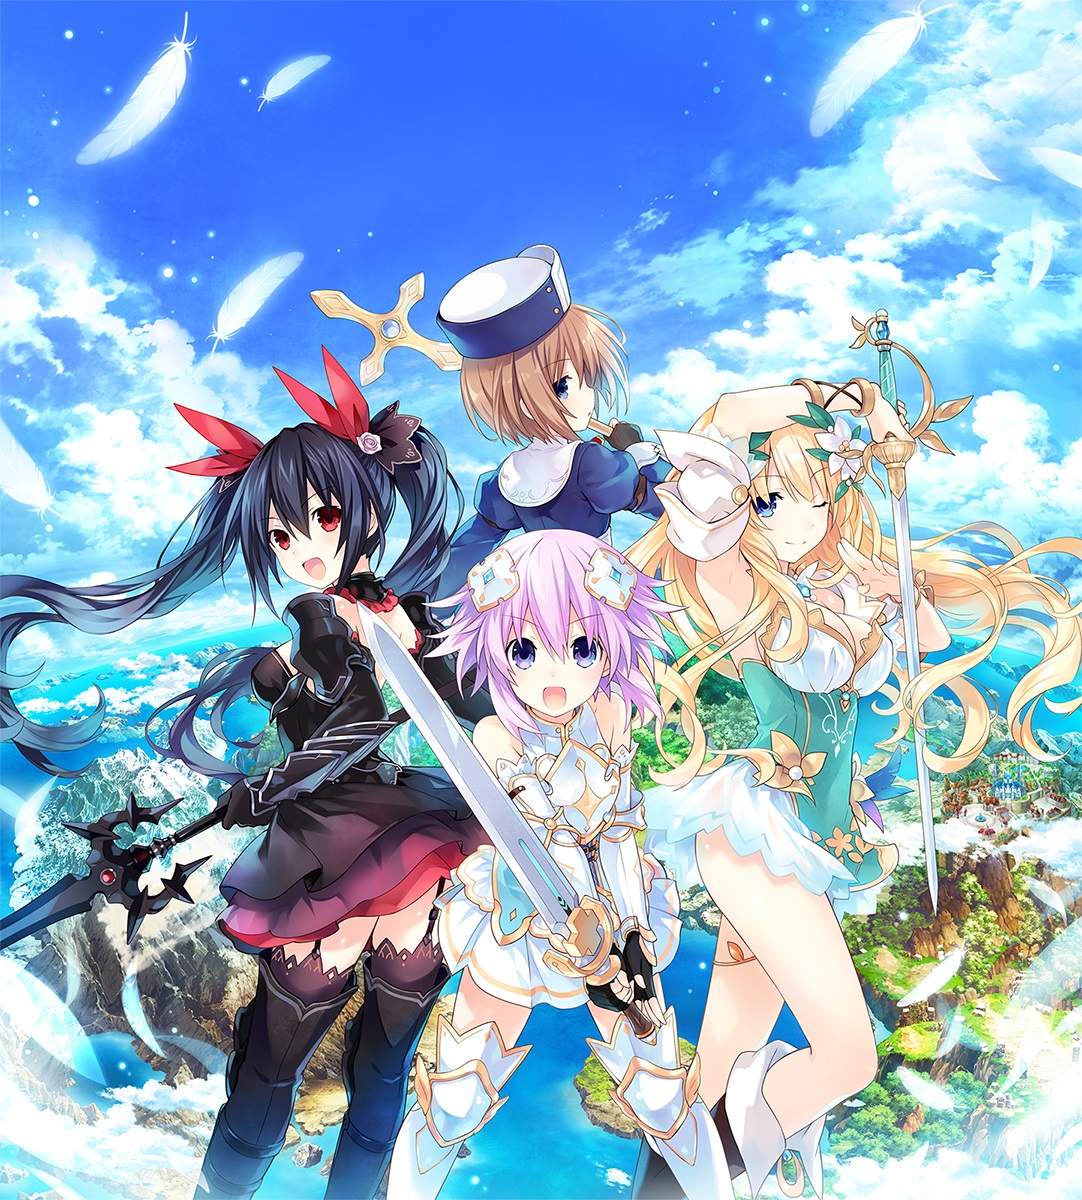 Cyberdimension Neptunia: 4 Goddesses Online/Image Gallery